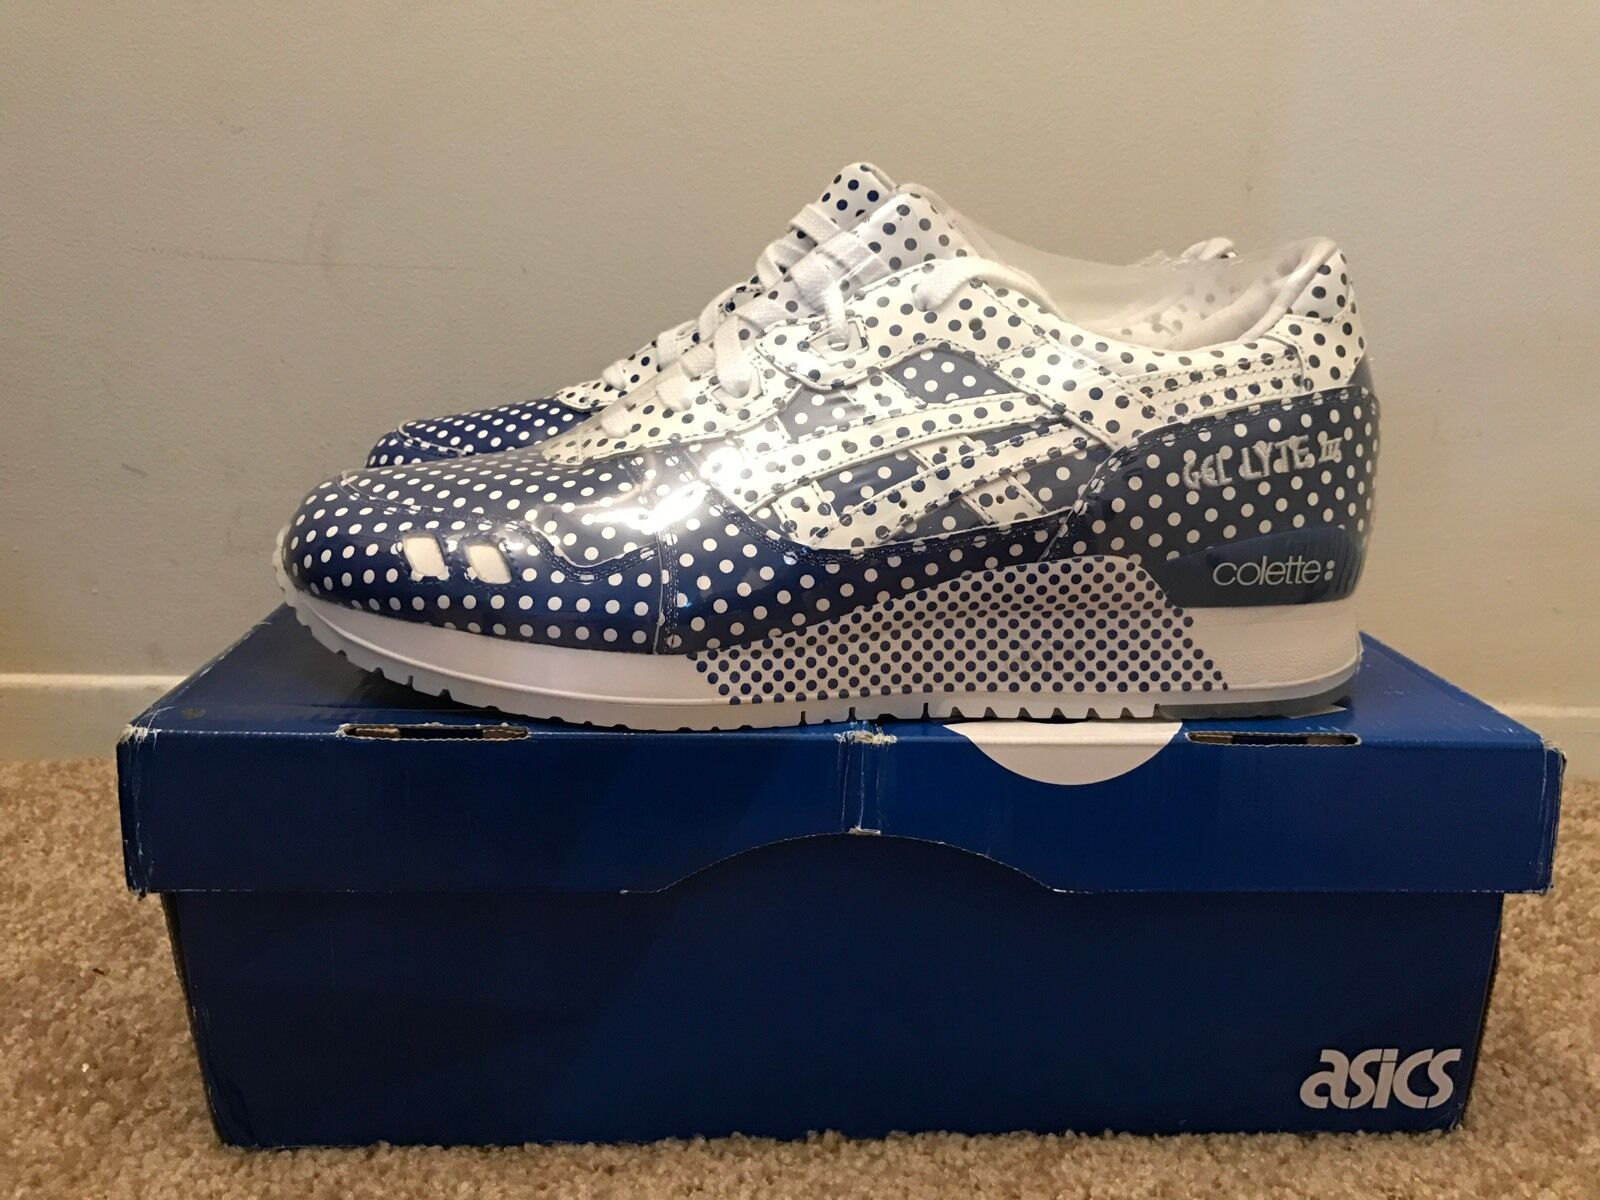 Asics  XColette 25th Ann Dotty Gel Lyte 3 Brand New Dead Stock Size 11.5 Receipt